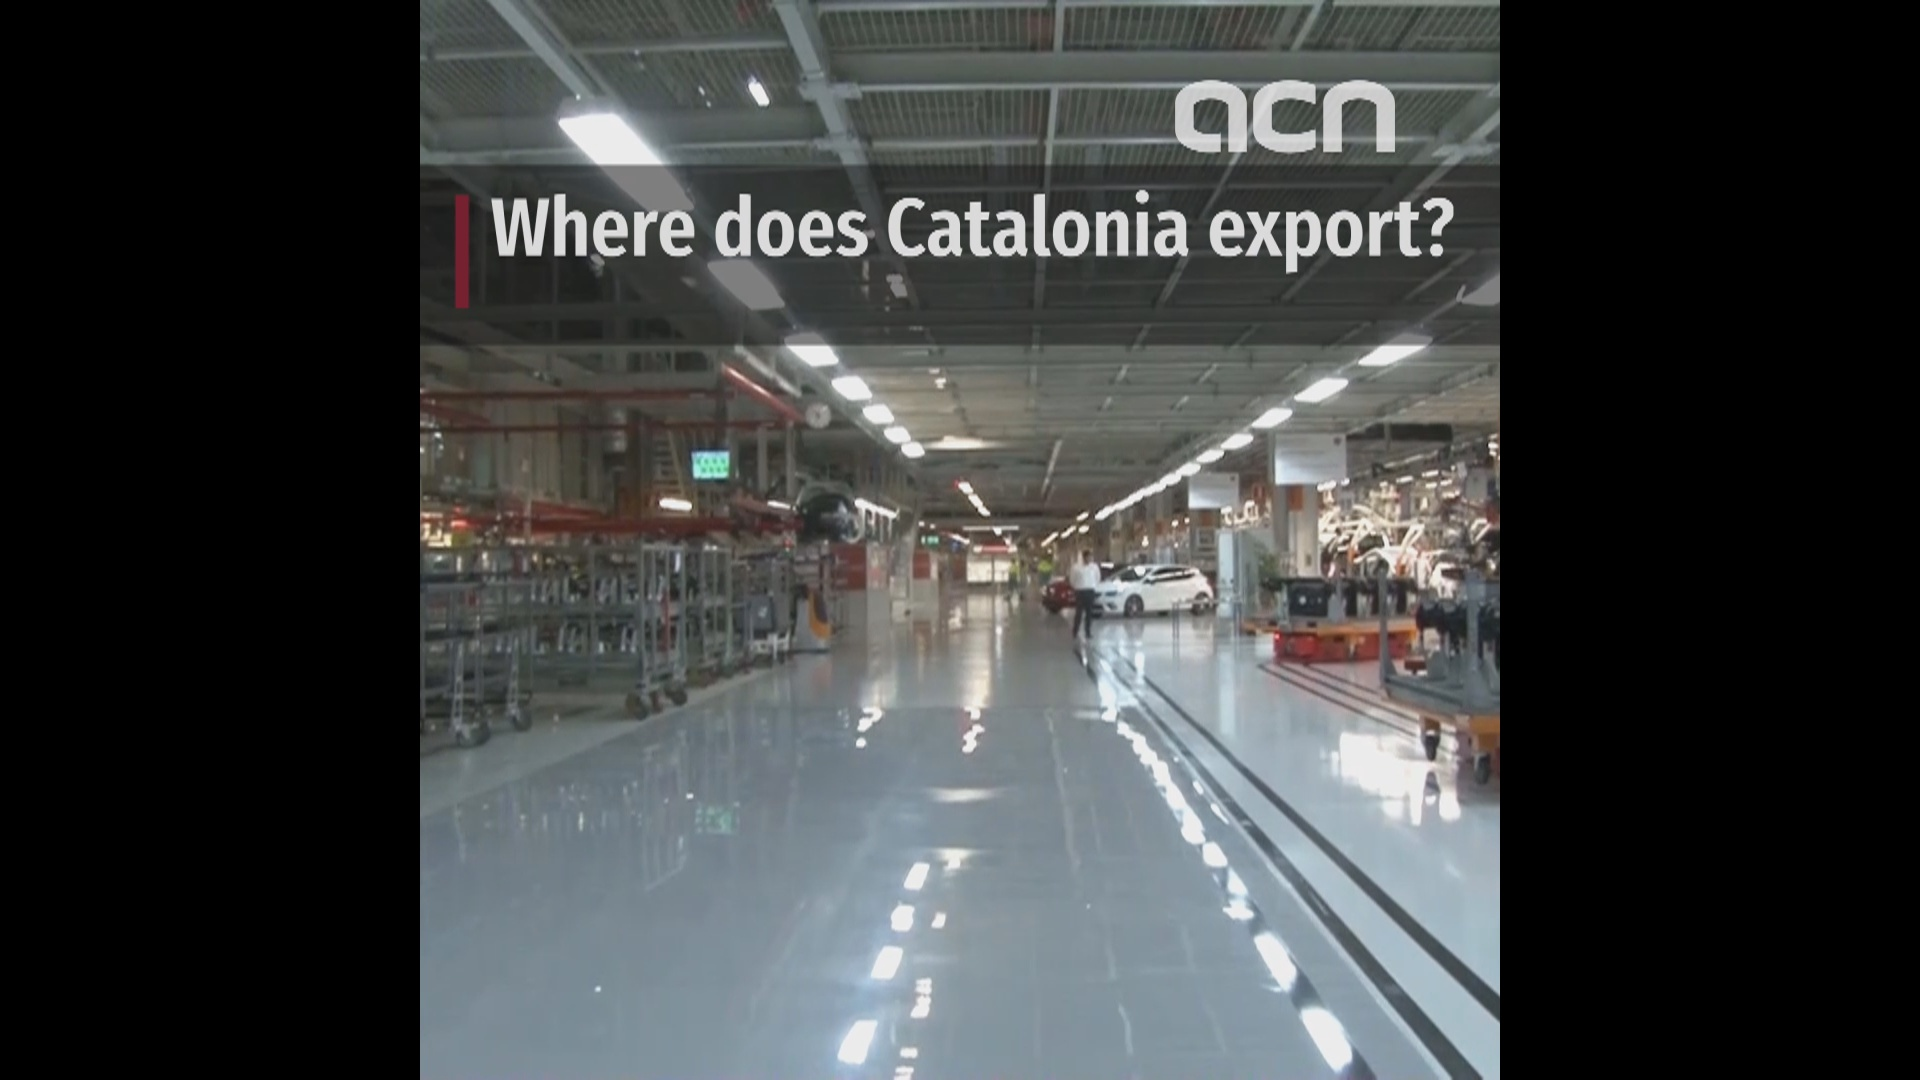 Catalan exports were on the rise in the first half of 2018